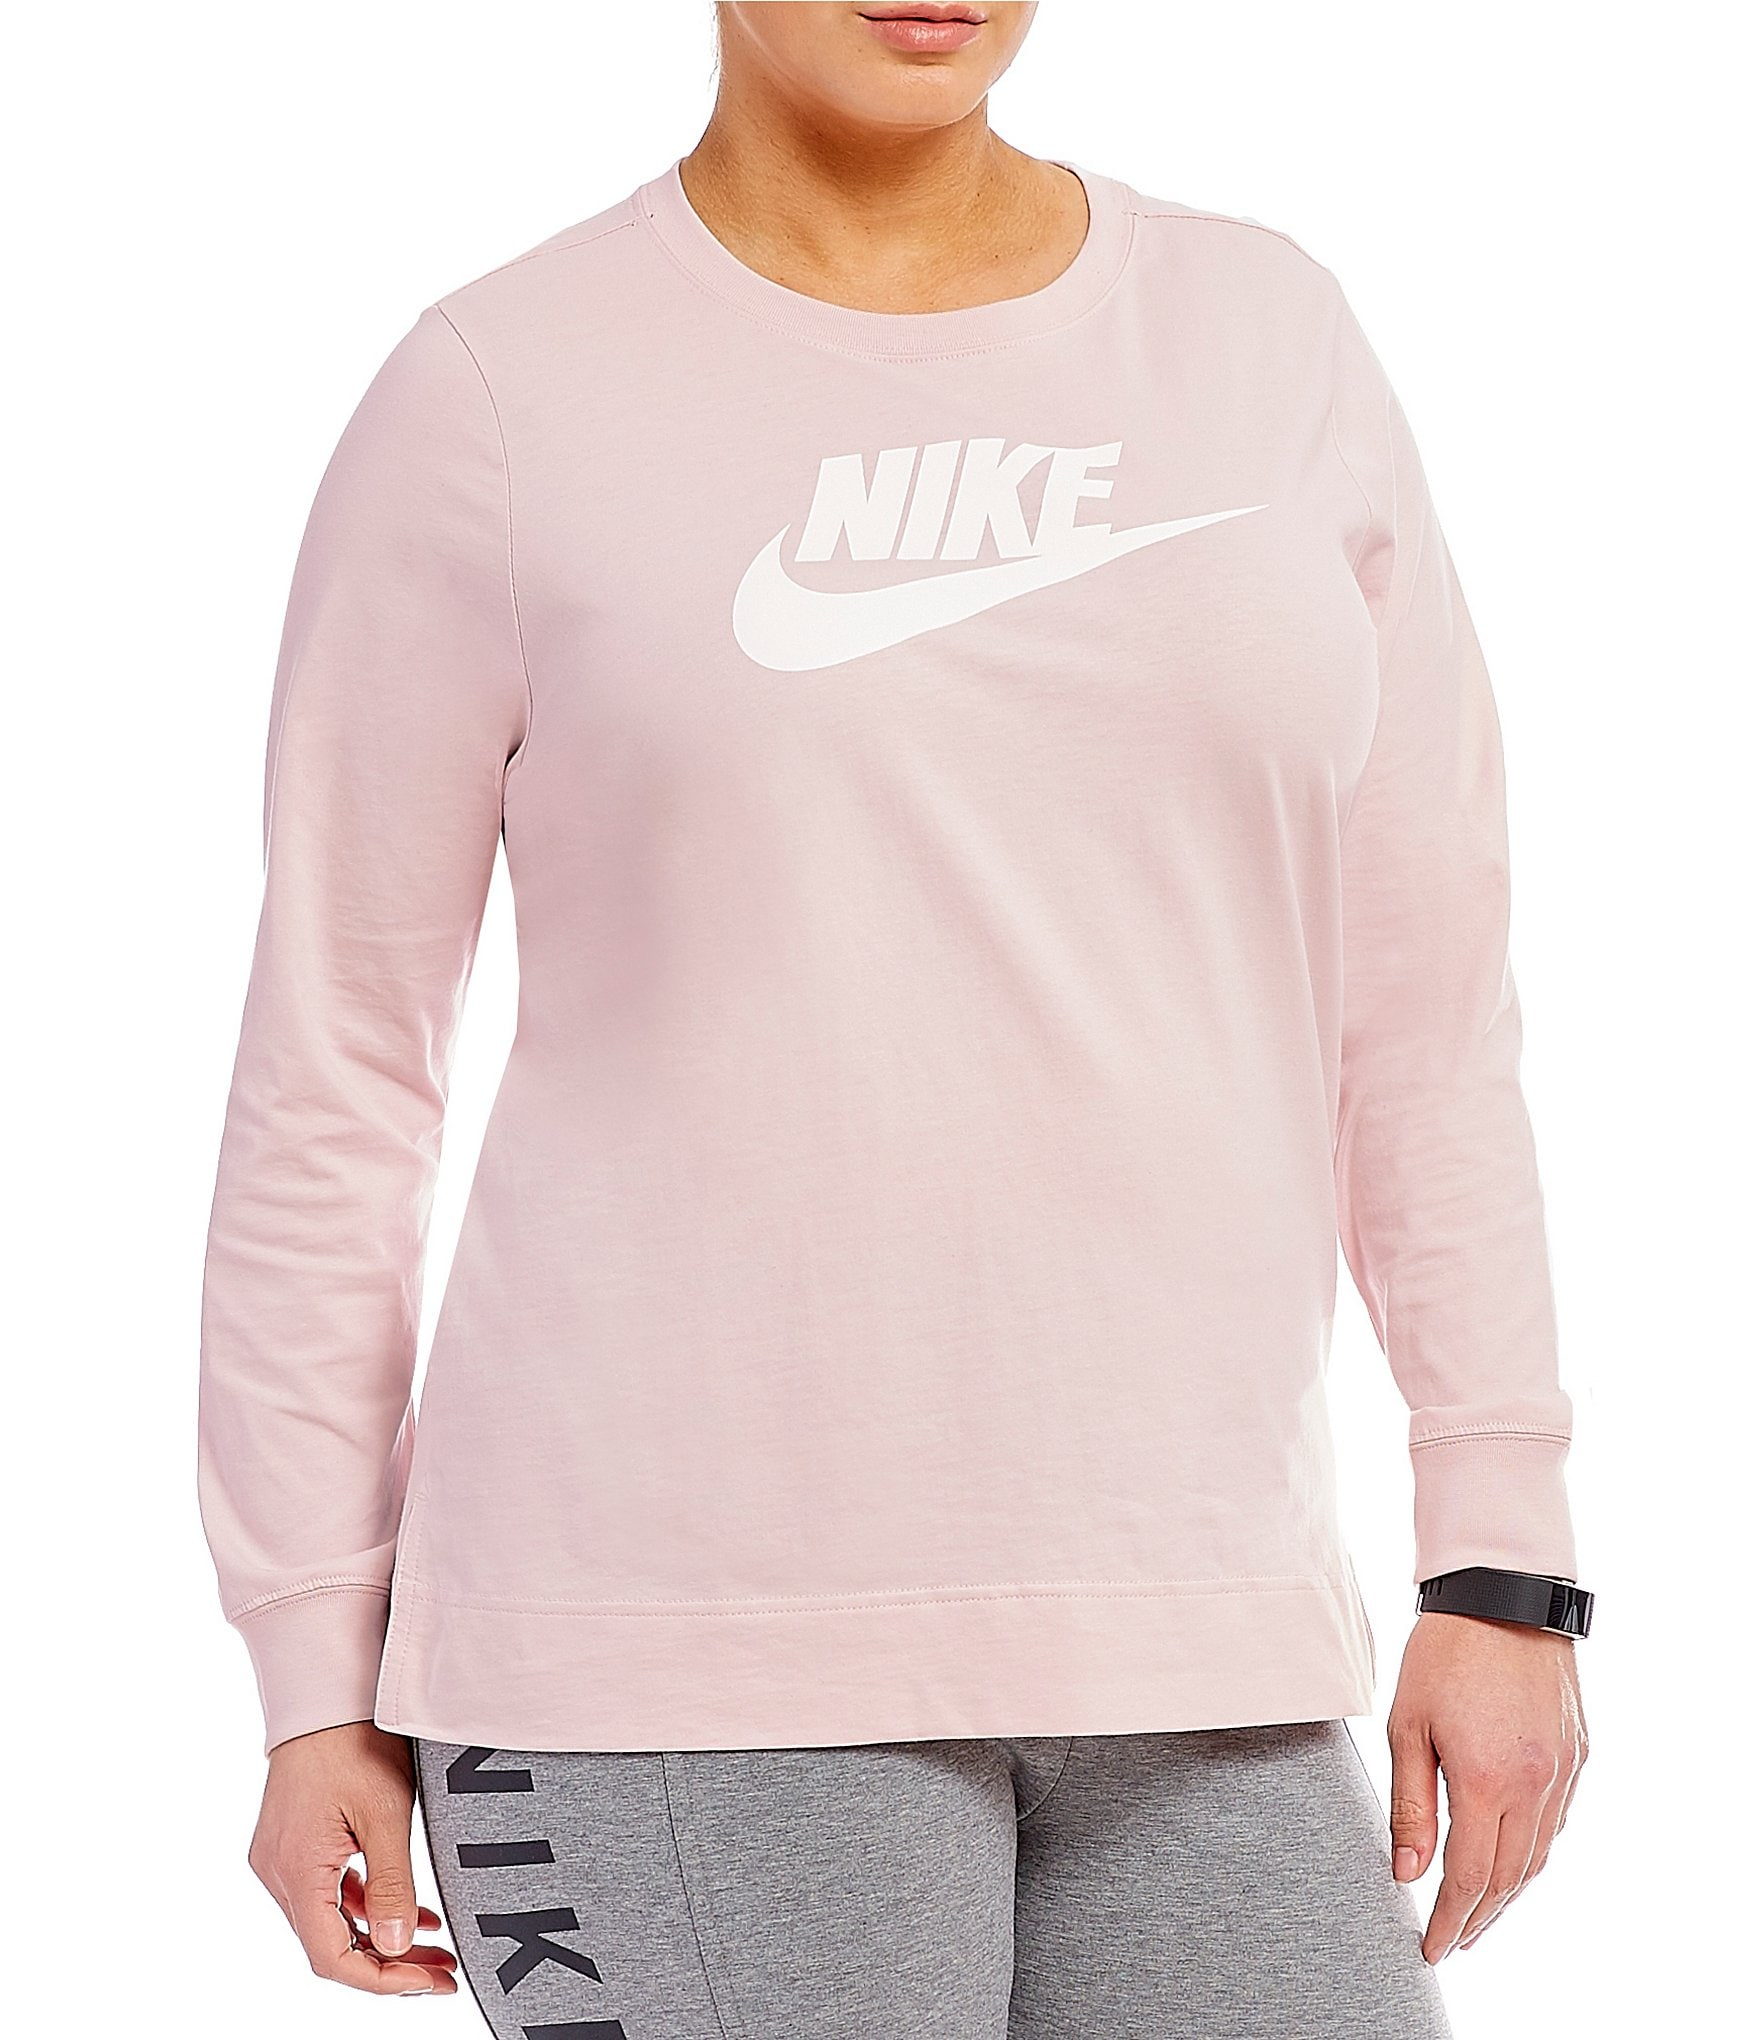 Nike Plus Sportswear Plus Long Sleeve T Shirt Dillards